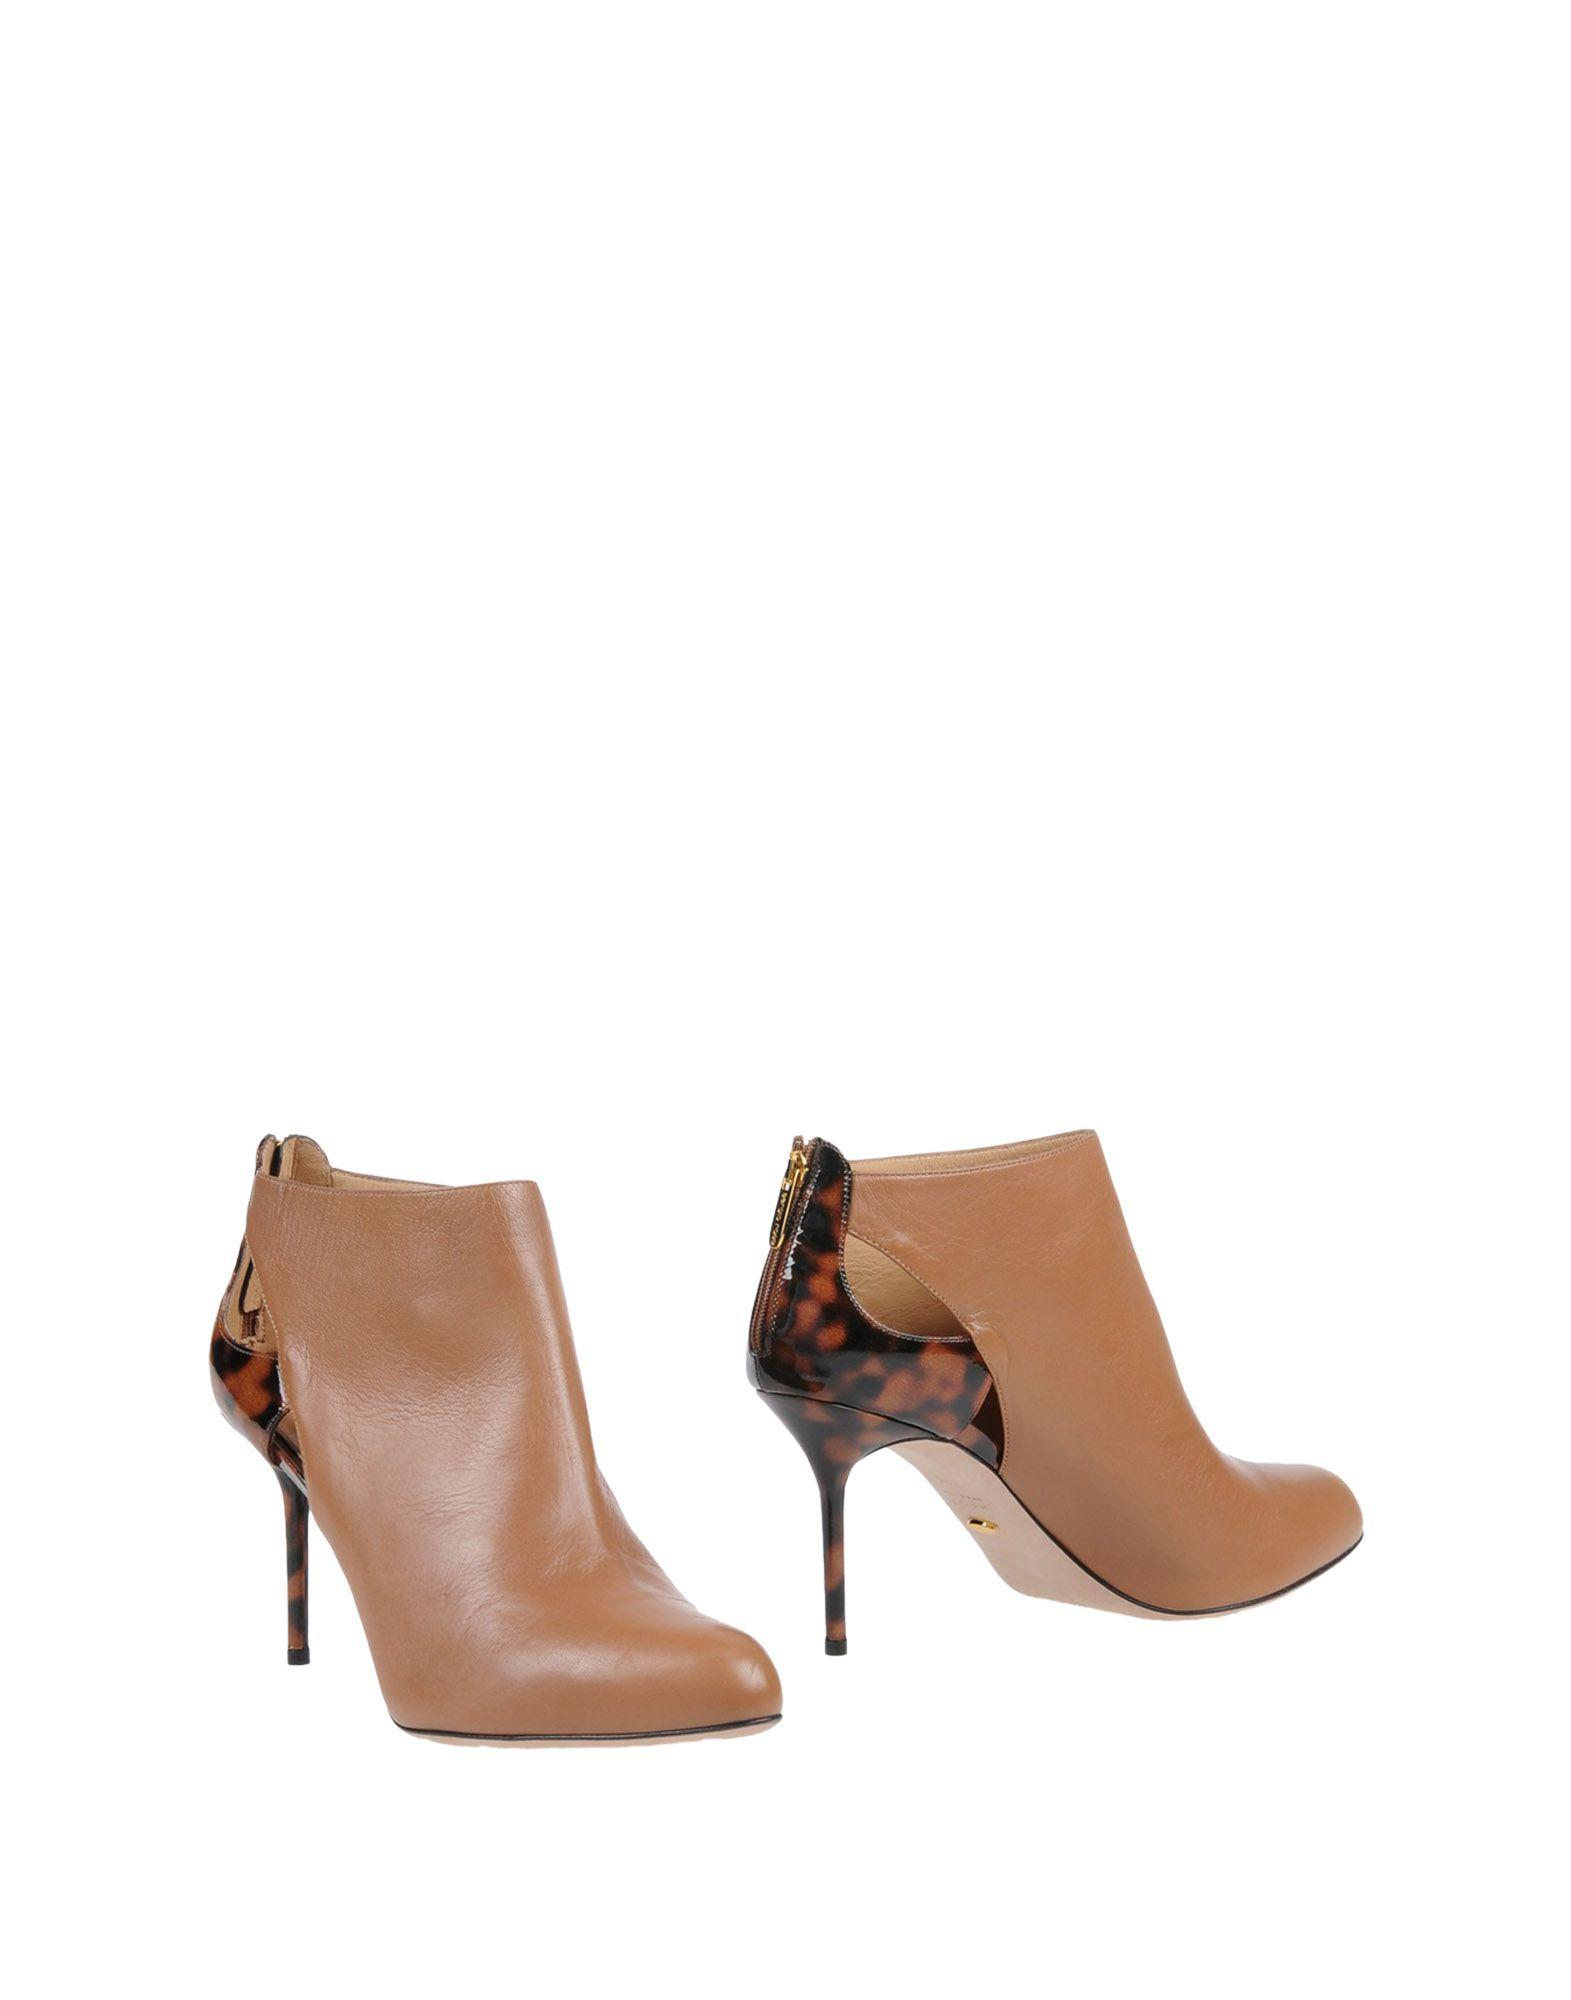 Sergio Rossi Ankle Boots In Camel